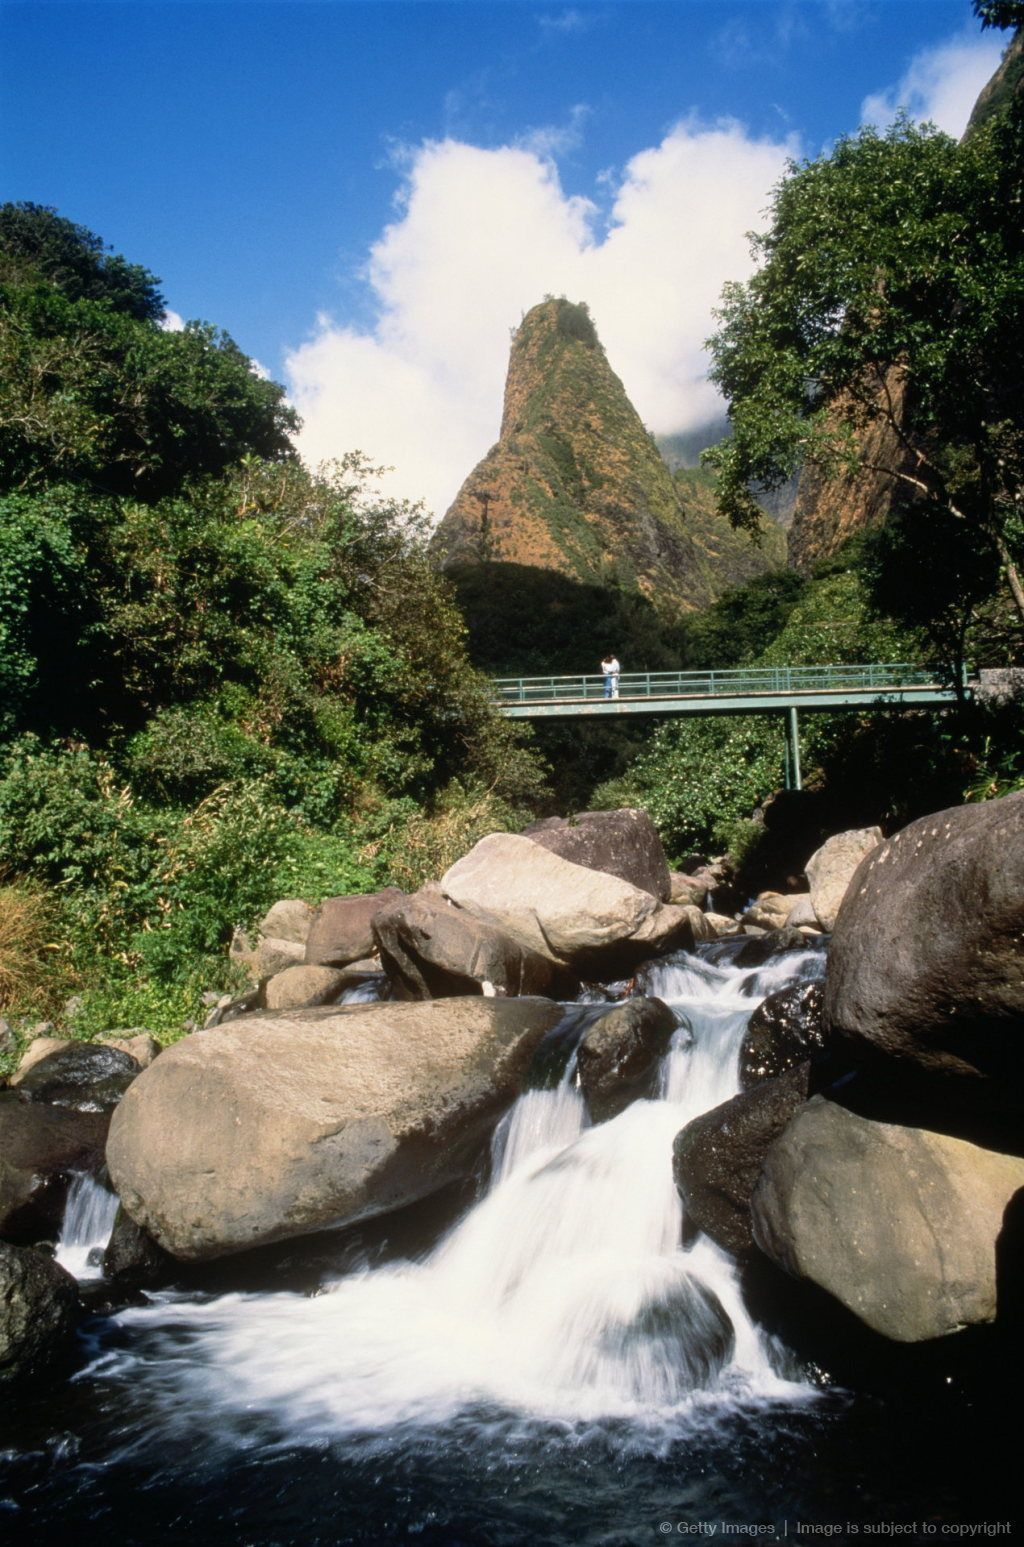 Maui iao valley state park stream below iao needle with